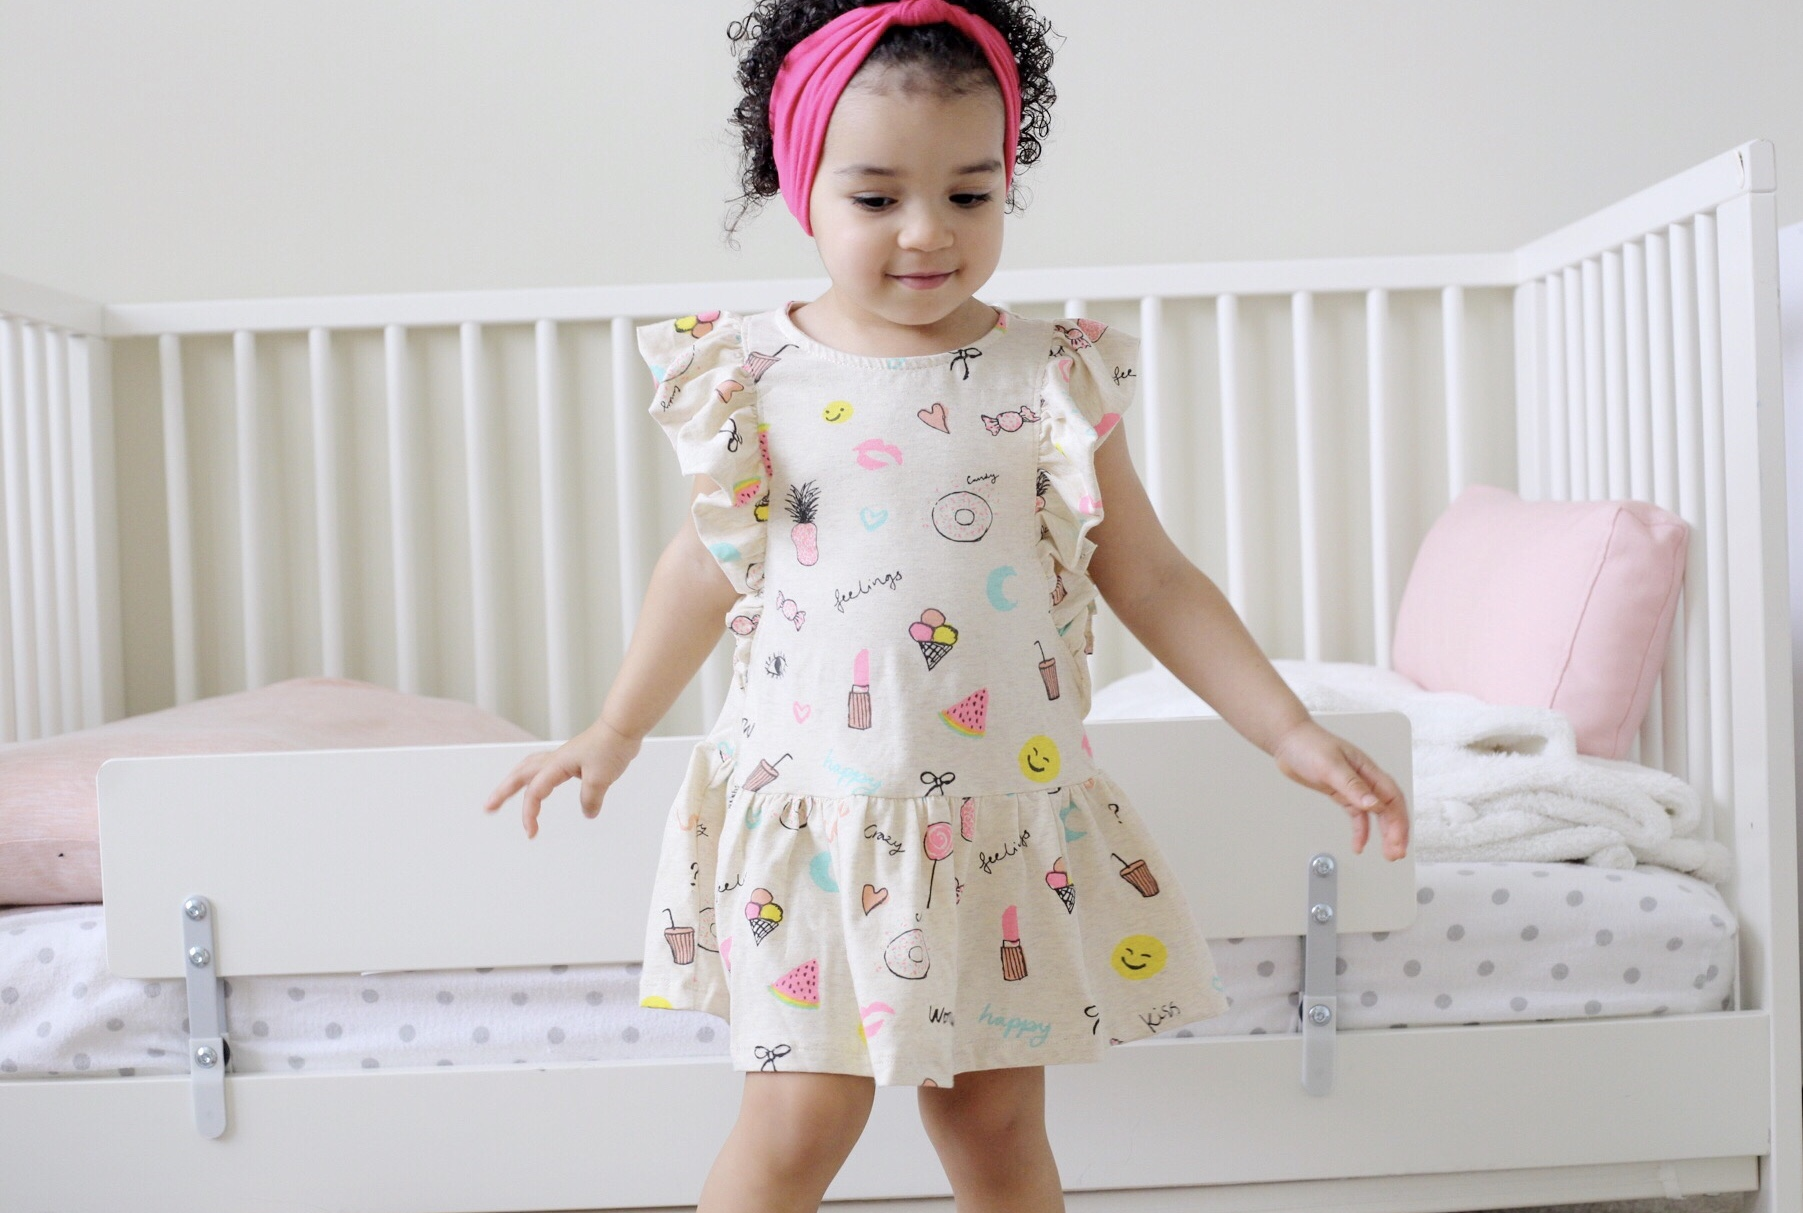 mac and mia style, kids clothing, toddler outfits, mac and mia outfits, toddler style